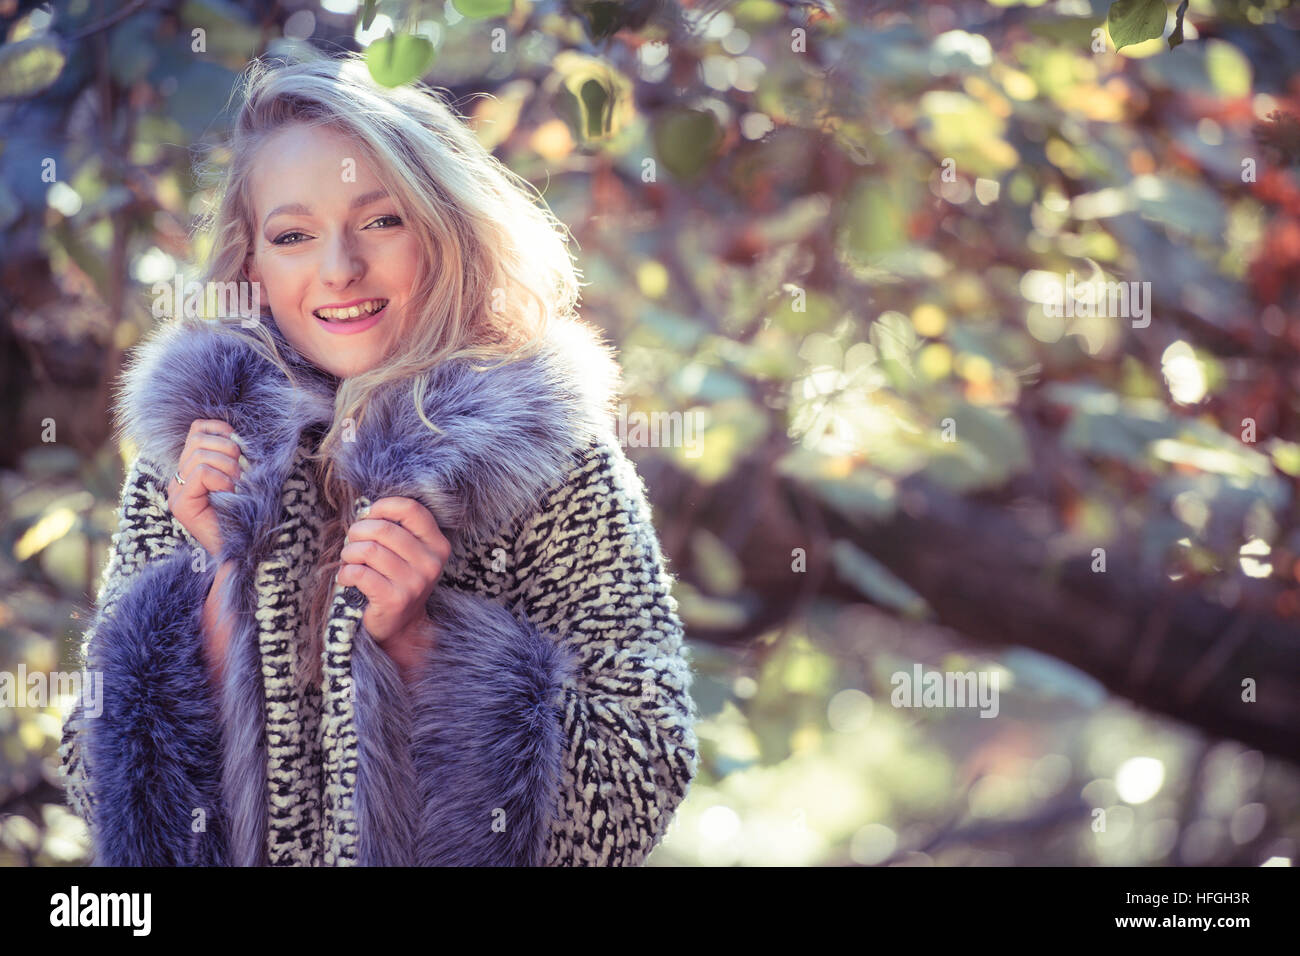 Photographic modeling as a career in the UK: A young slim attractive 20  year old caucasian woman girl with long blonde hair alone by herself in  woodlands on ...